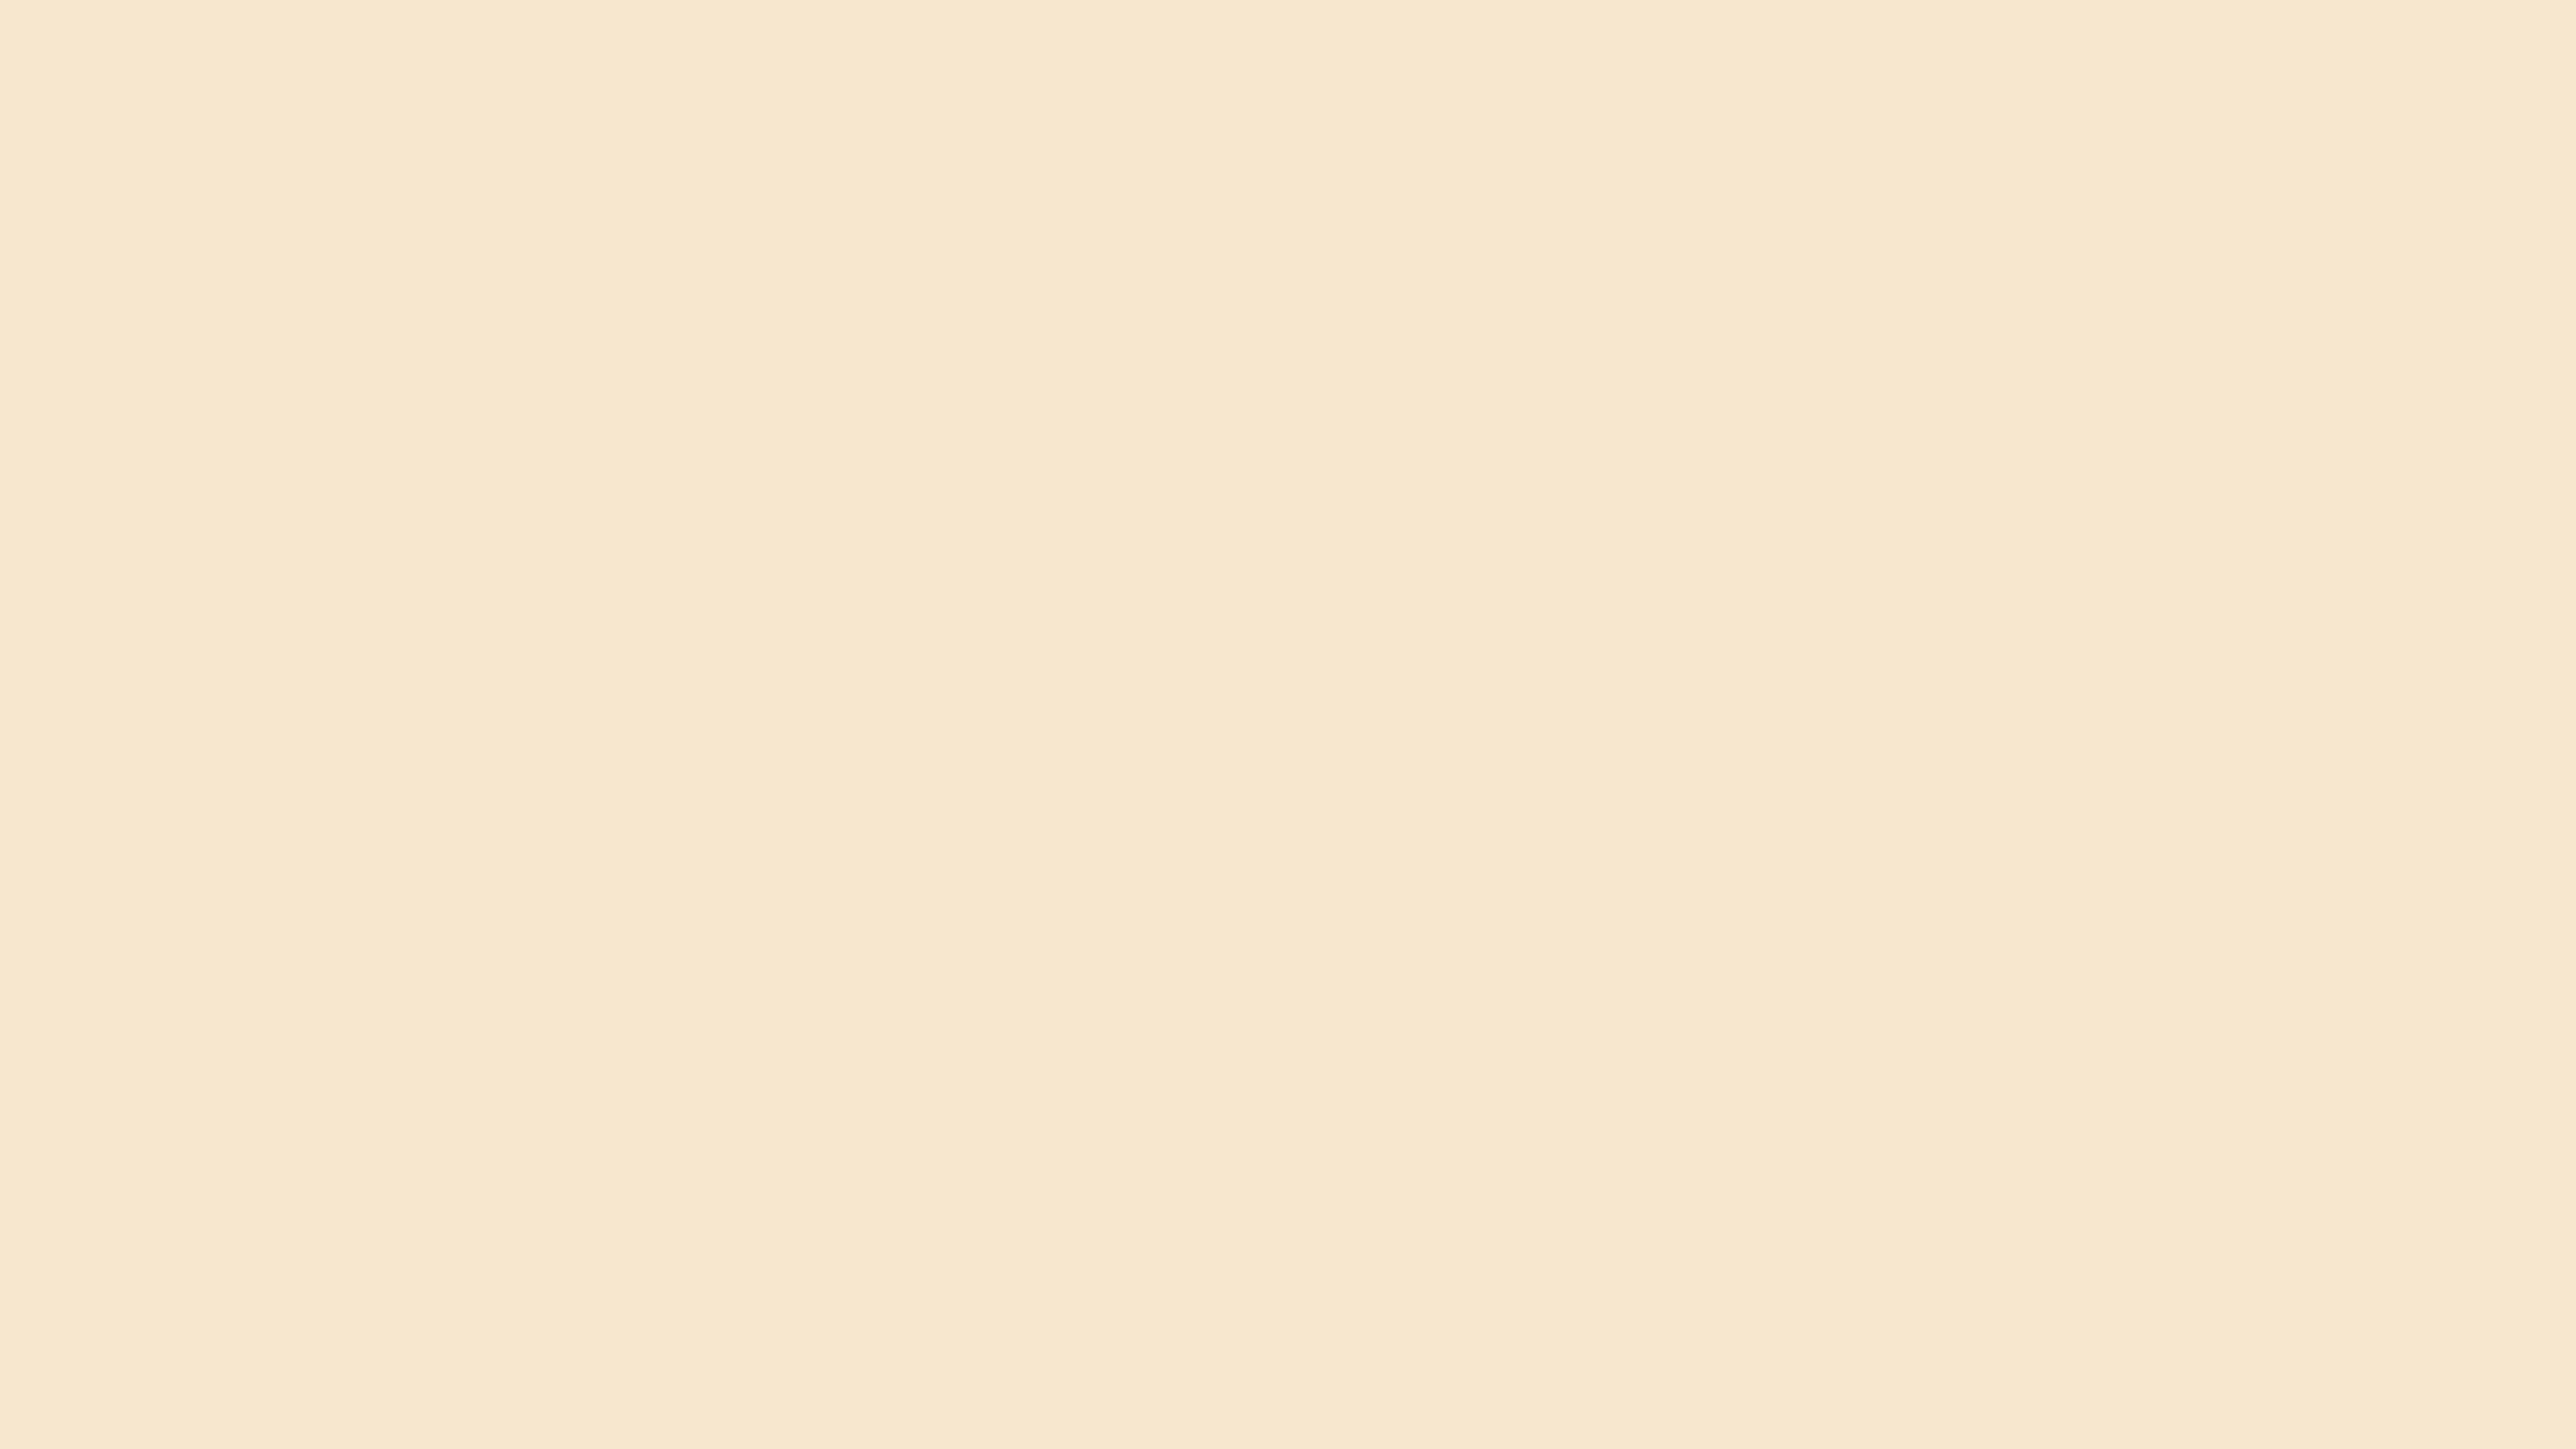 3840x2160 Champagne Solid Color Background